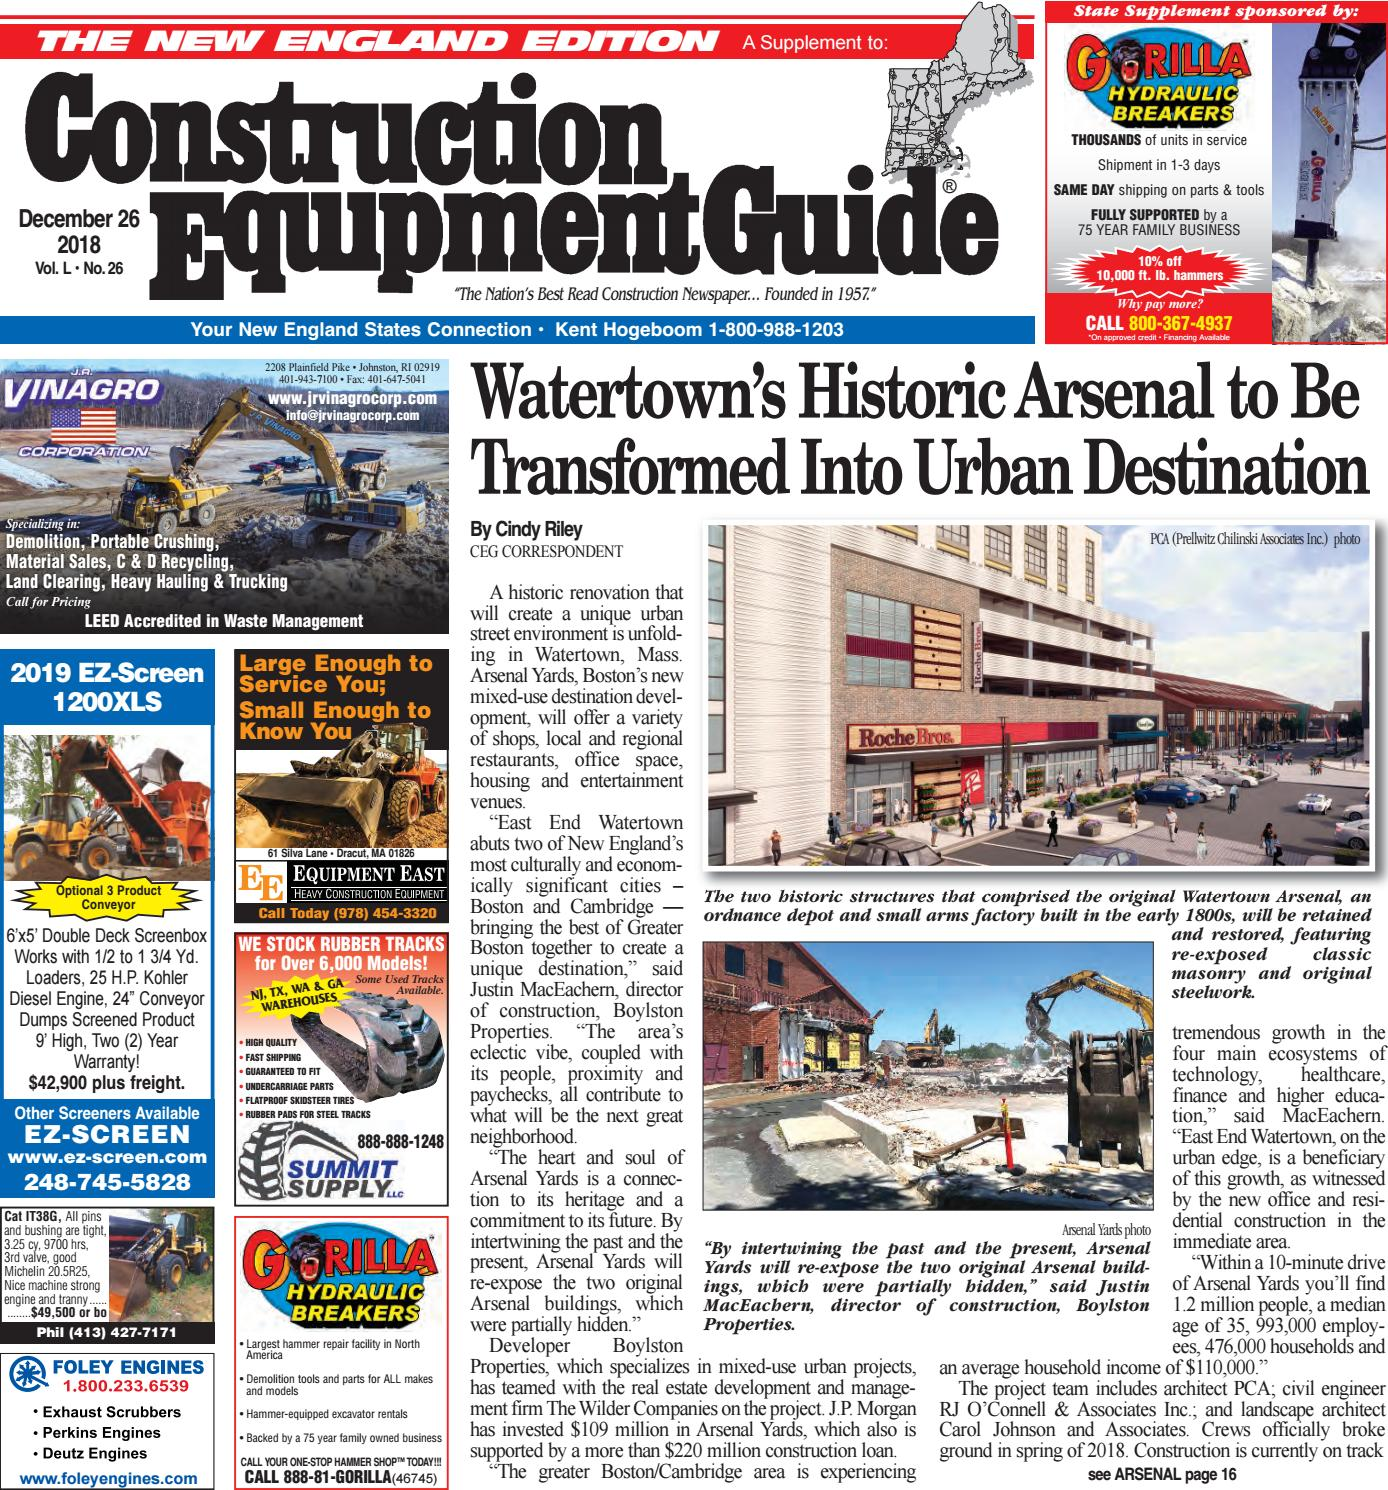 New England 26 December 26, 2018 by Construction Equipment Guide - issuu